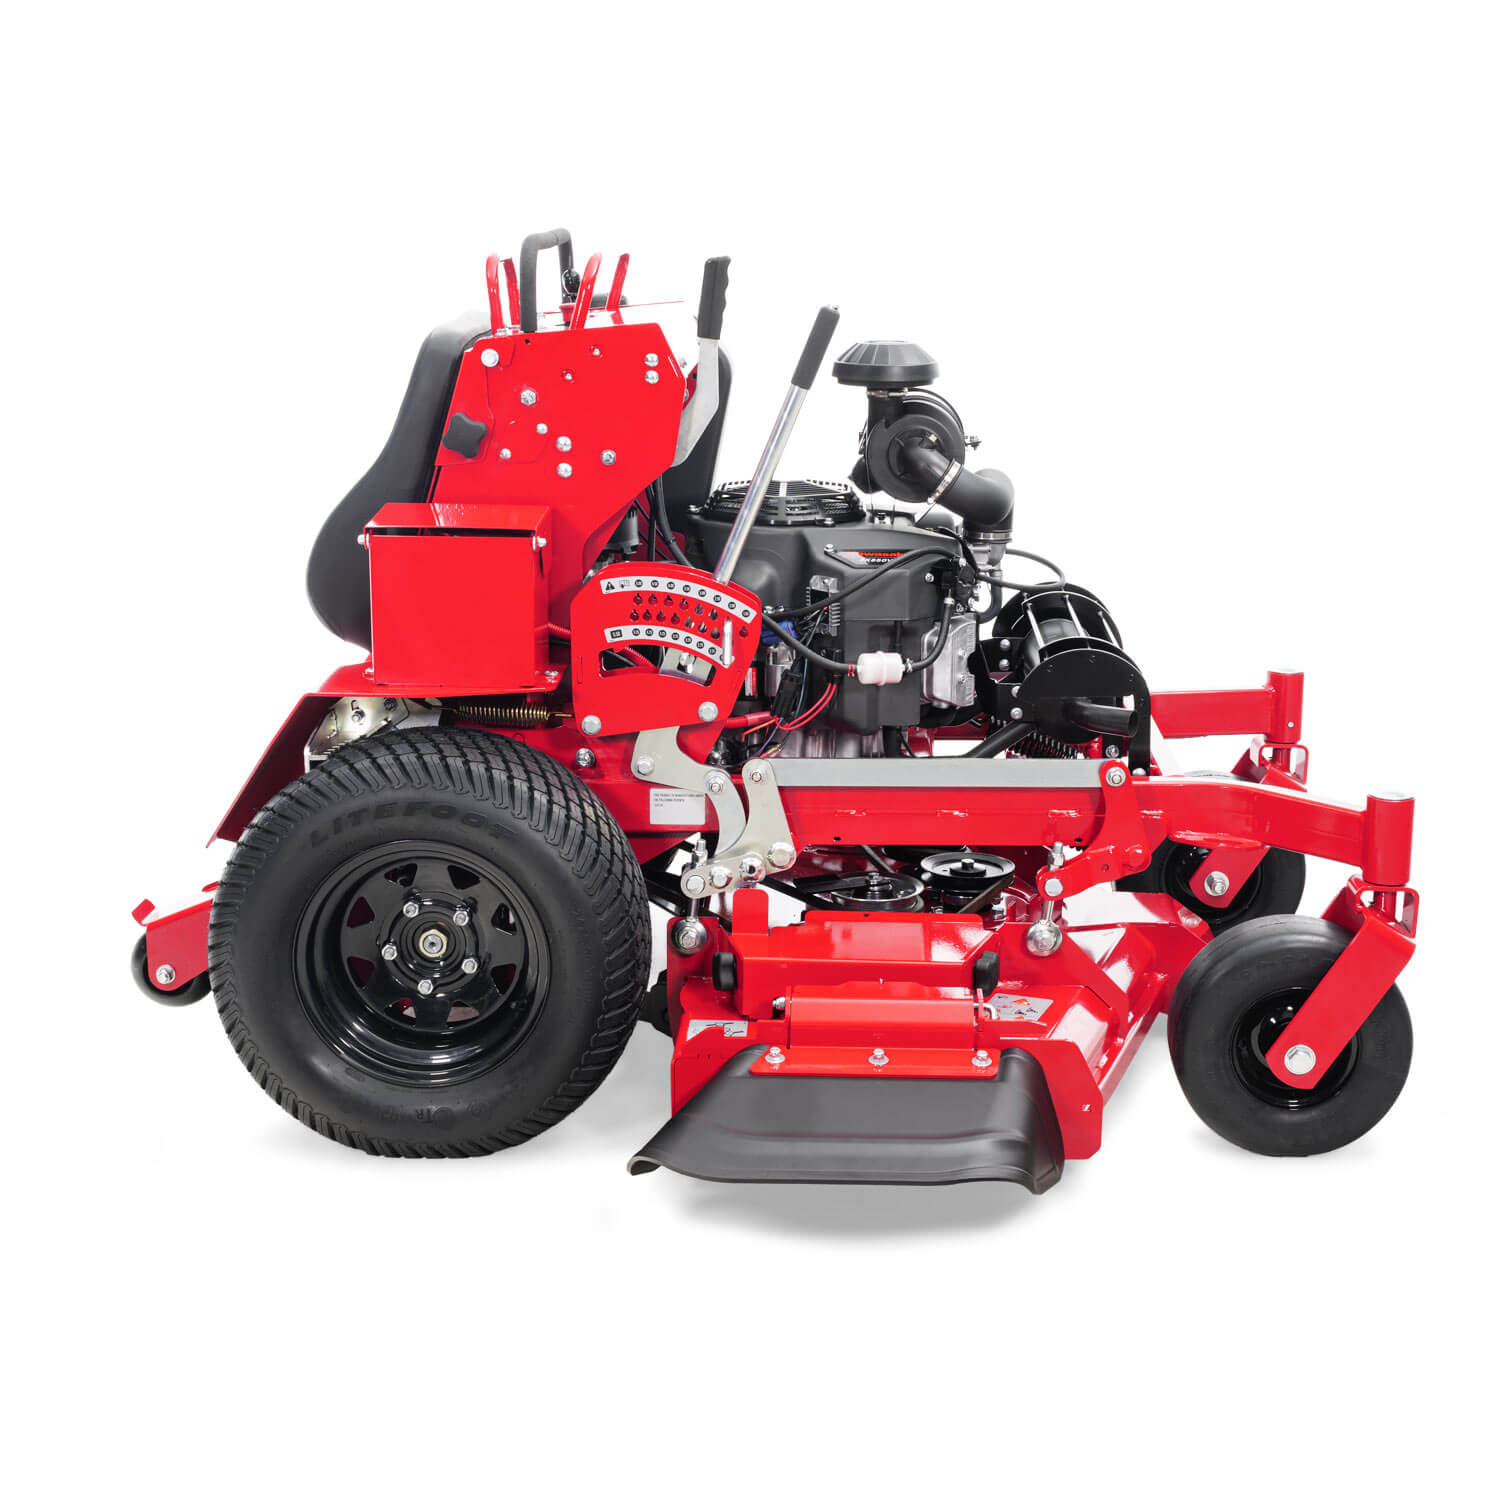 Image of the profile of a red stand-on mower